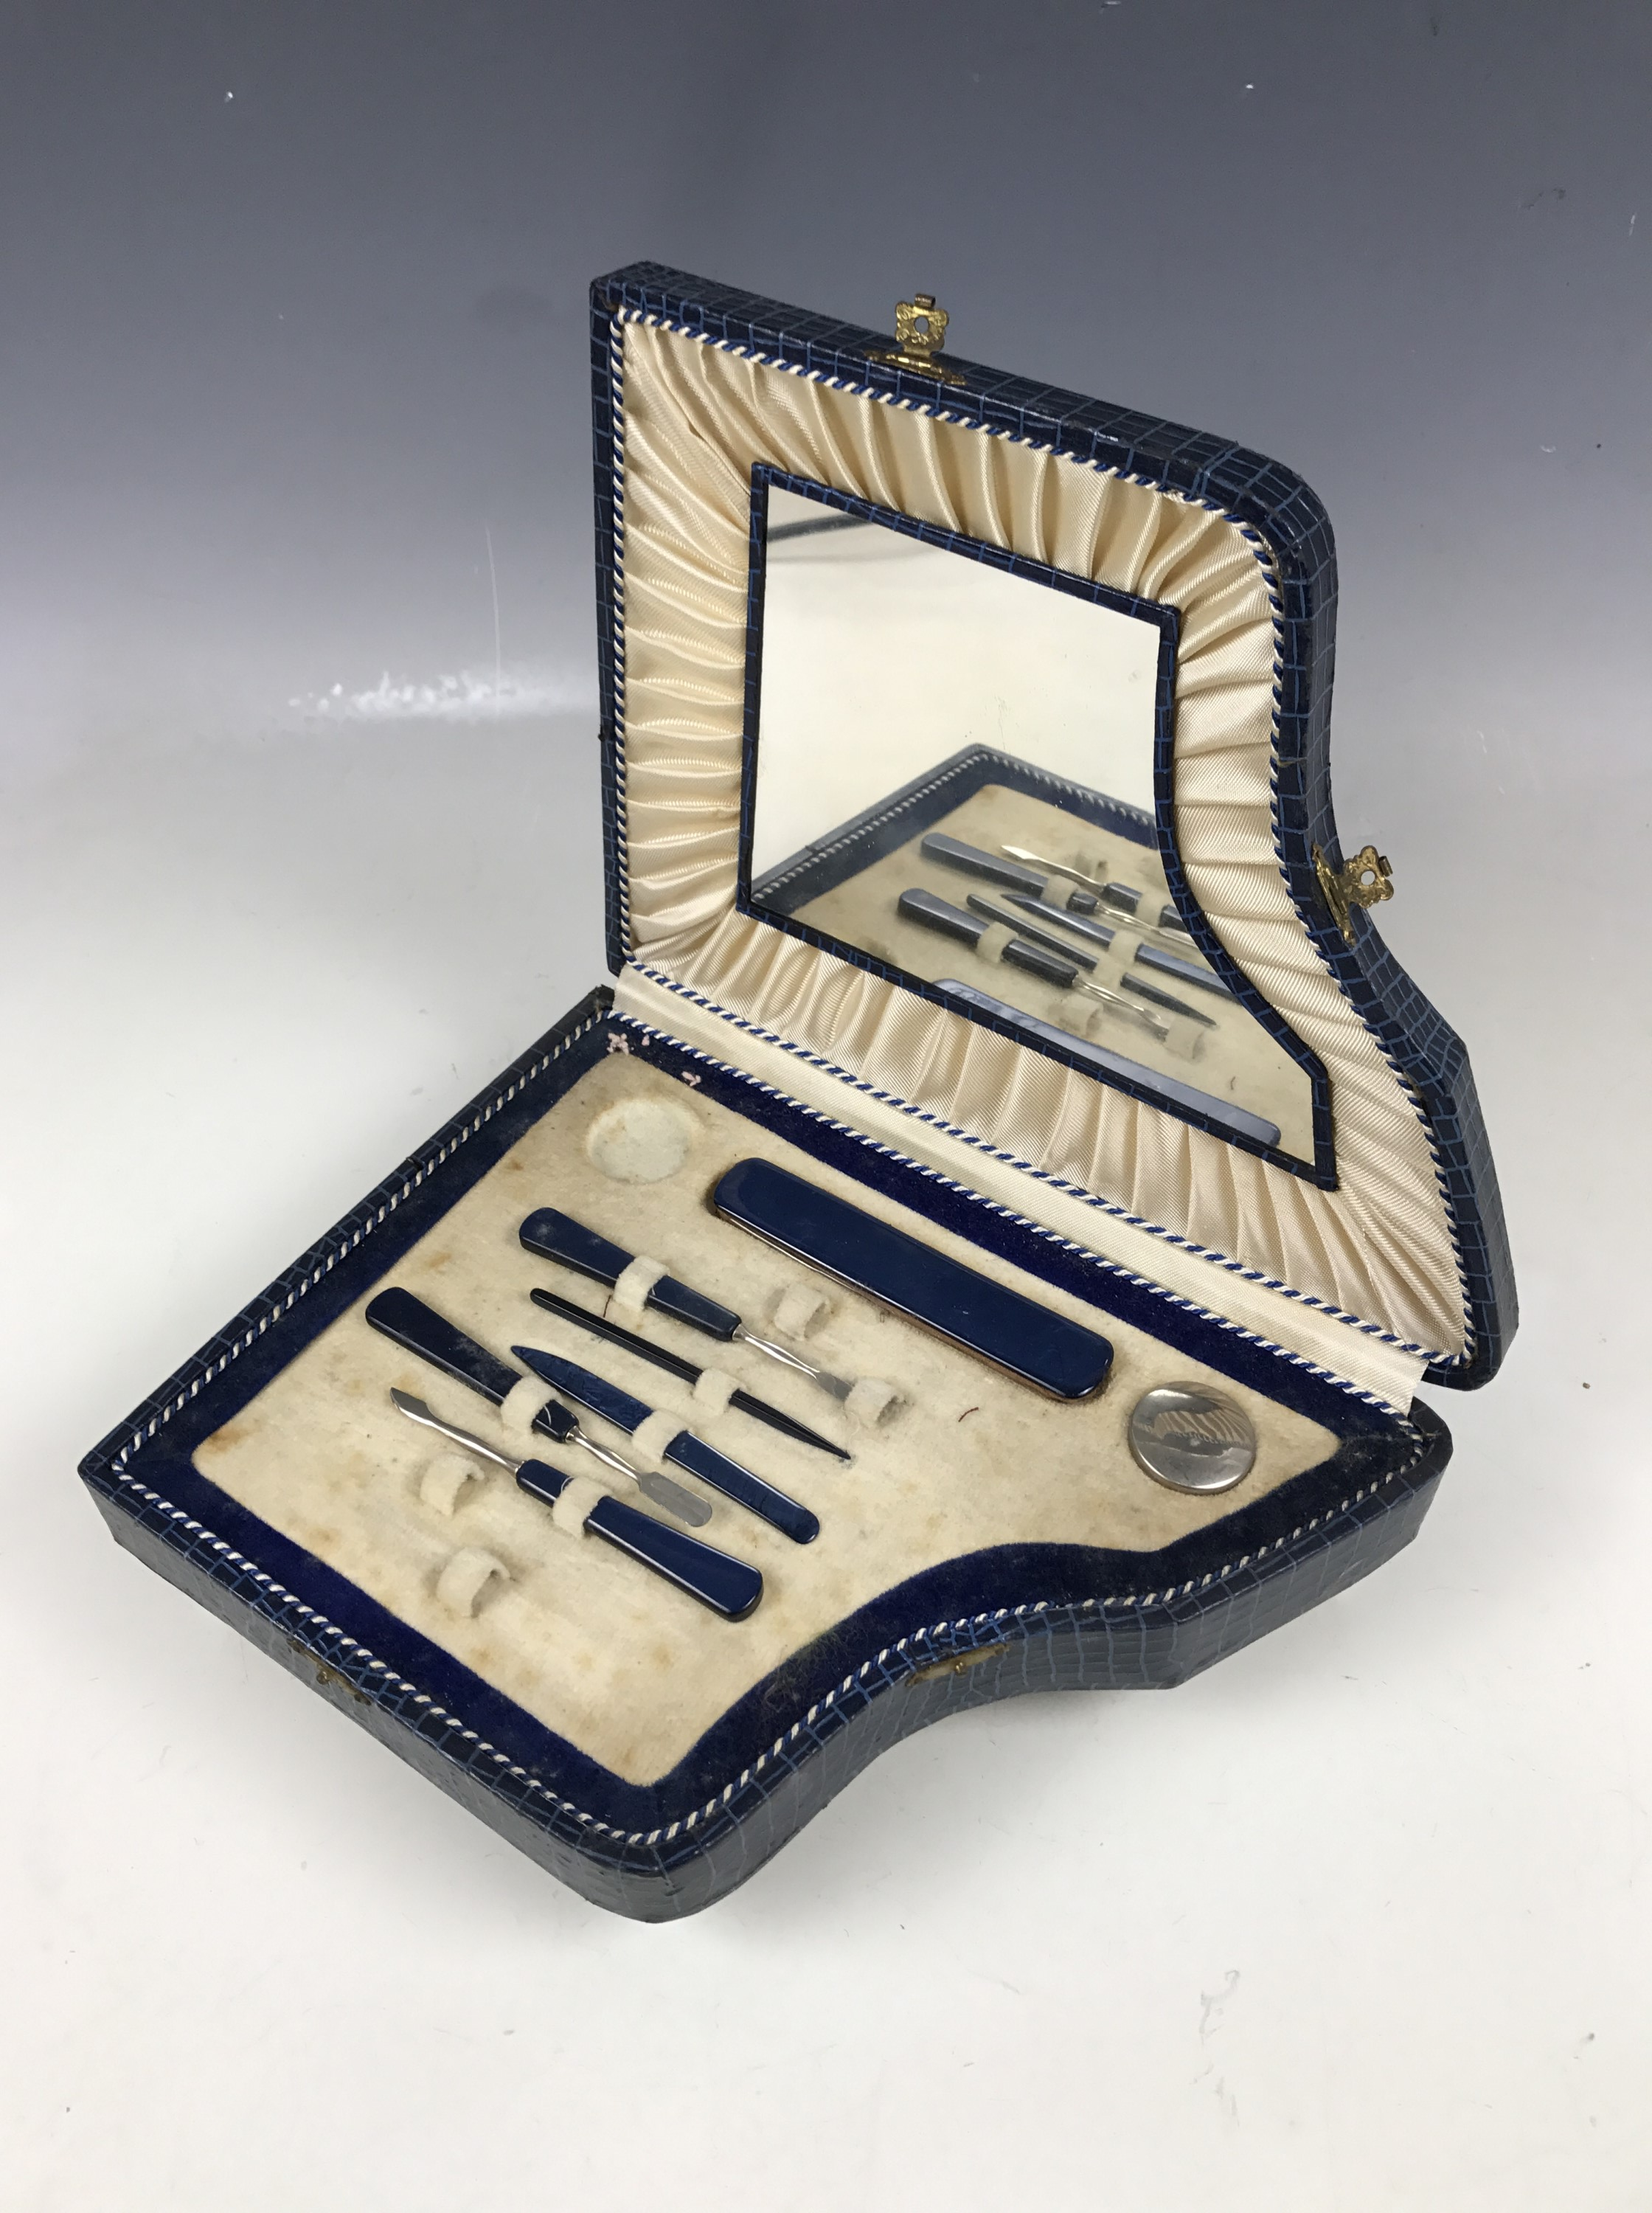 Lot 3 - A 1930s novelty manicure set with the case modelled as a grand piano